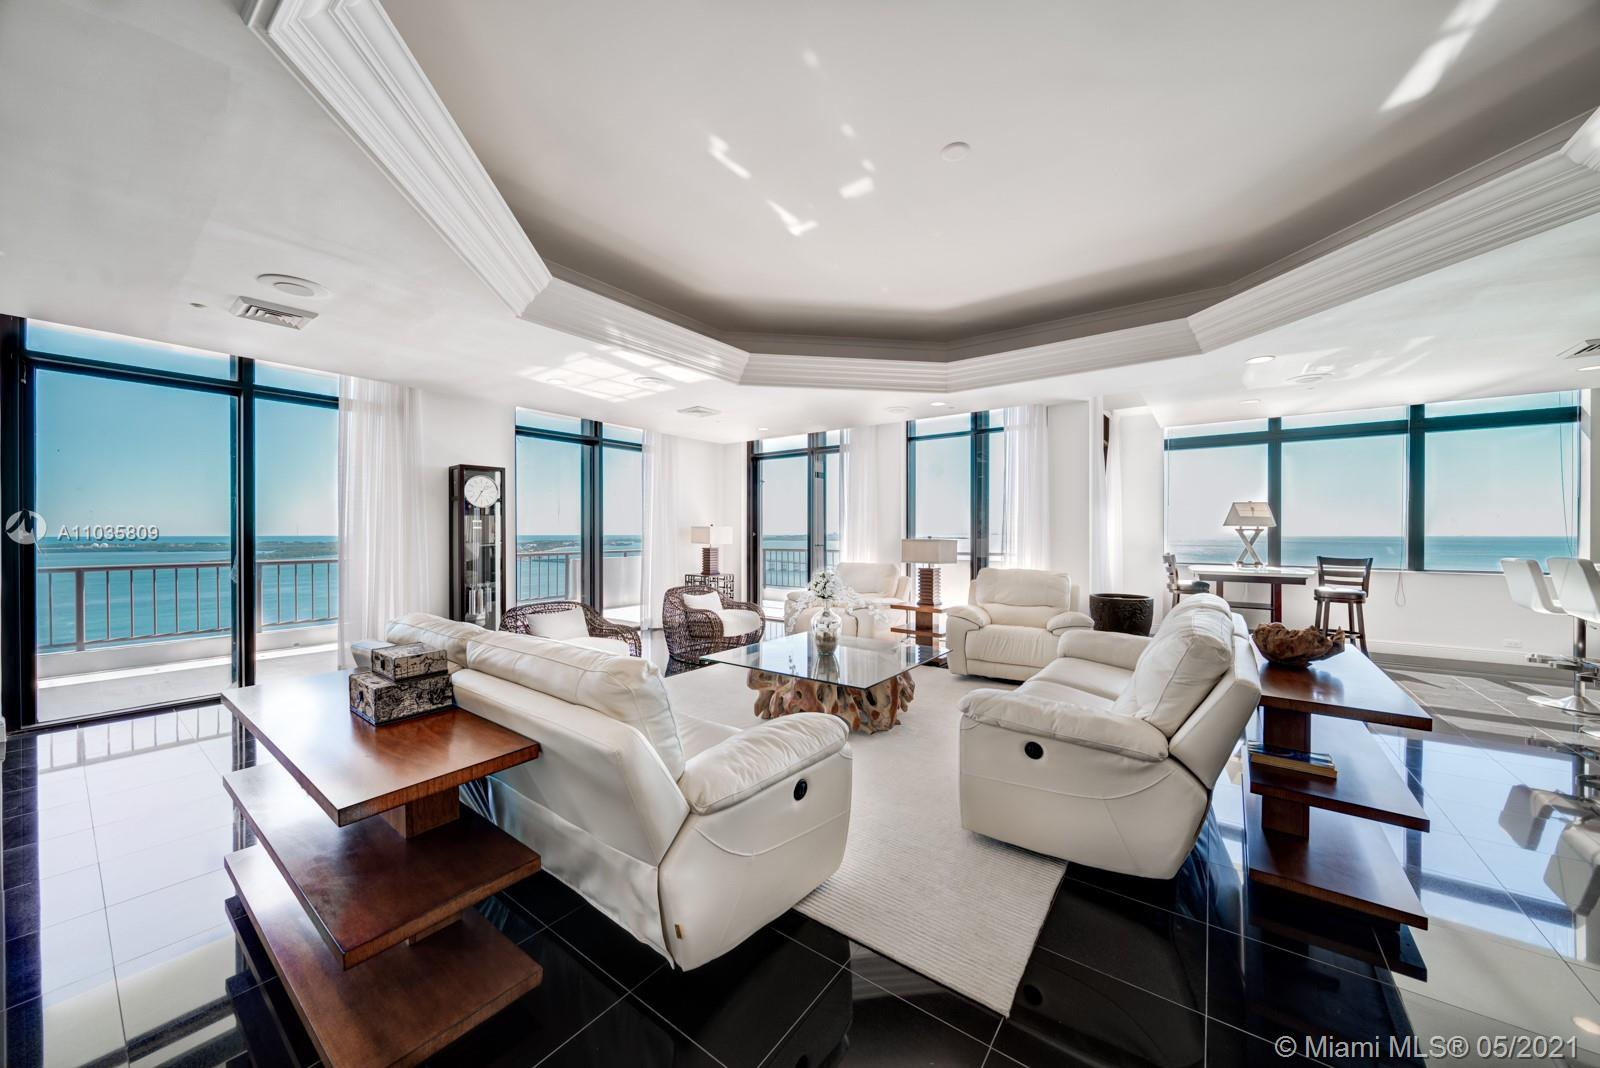 EXTRAORDINARY 7280 sf apartment facing Brickell Ave and Biscayne Bay. This 6 Bedroom & 6.5 Baths with a STUNNING and endless view of the Bay and Brickell Ave, comes with PRIVATE 40ft boat dock, 6 assigned parking spaces. 2 of the bedrooms are lofts w/water views. The living area includes a full bar, formal dining, breakfast area, teppanyaki cook-top, wrap-around balcony. Amenities: BBQ Area, Pool, State-of-the-art Gym, Party Room, Kids Room & more. There is NOTHING in Brickell that compares, see for yourself!